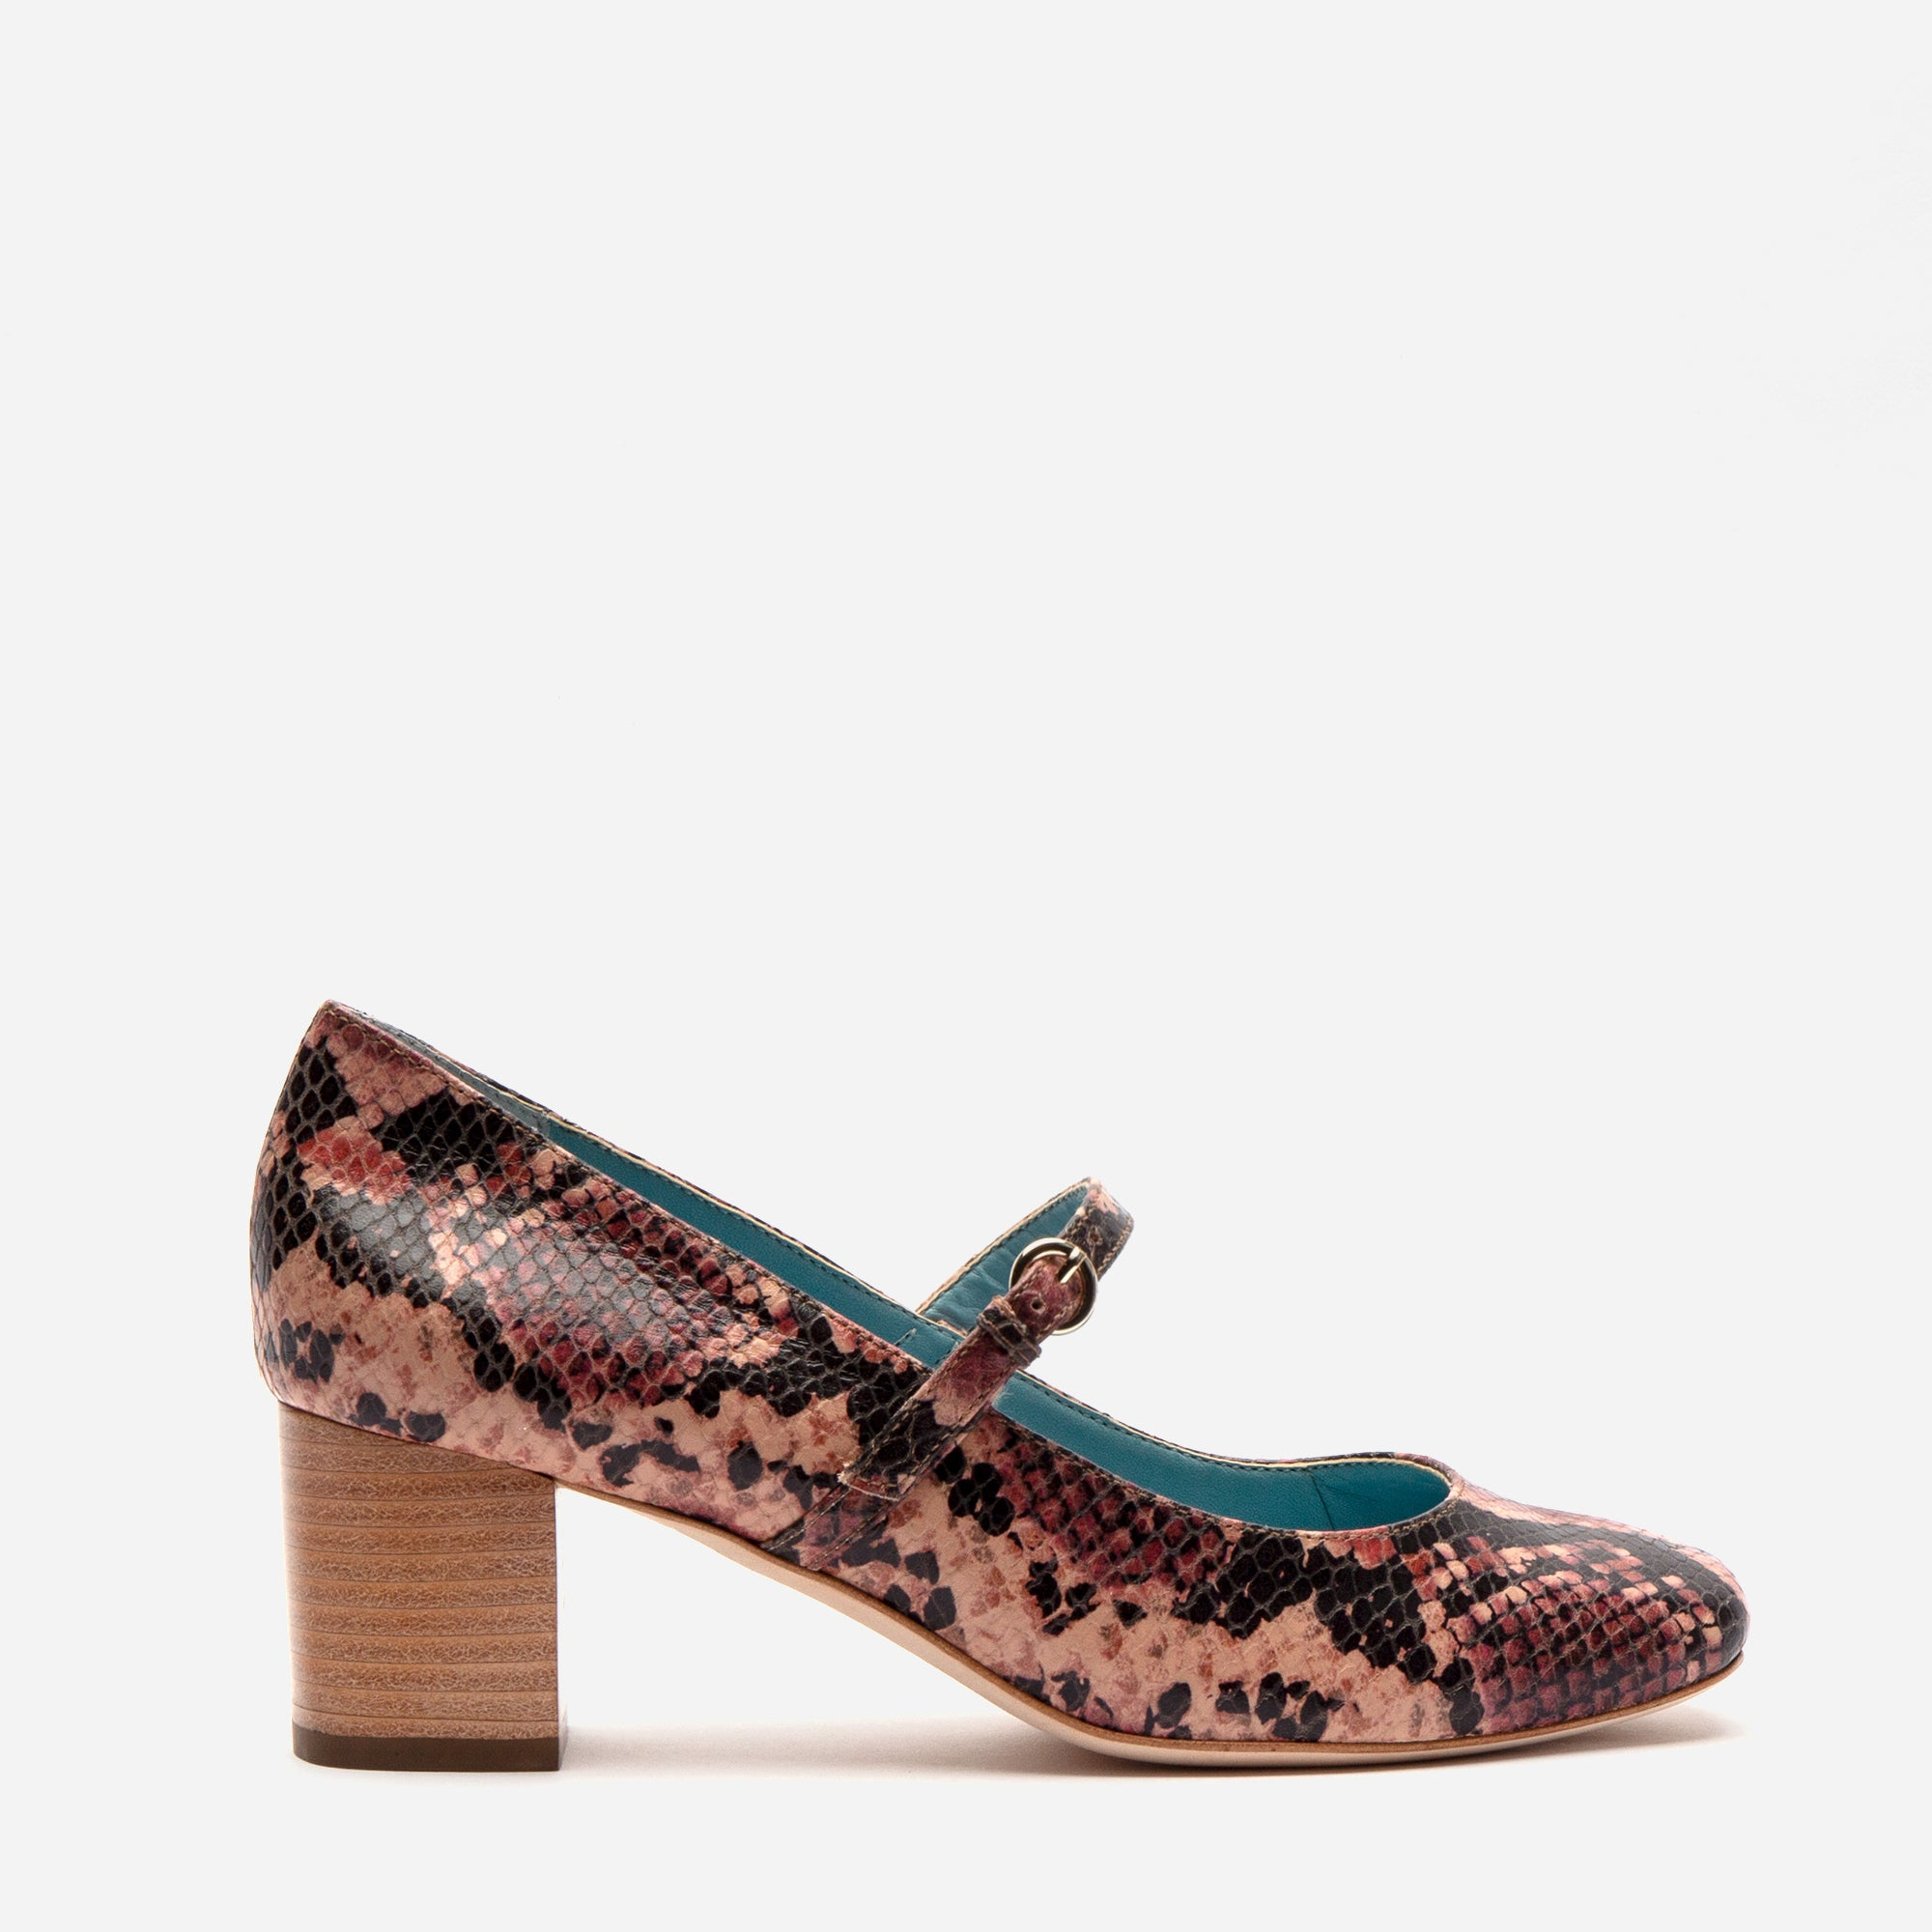 Kat Mary Jane Heels Snake Printed Leather Pink - Frances Valentine